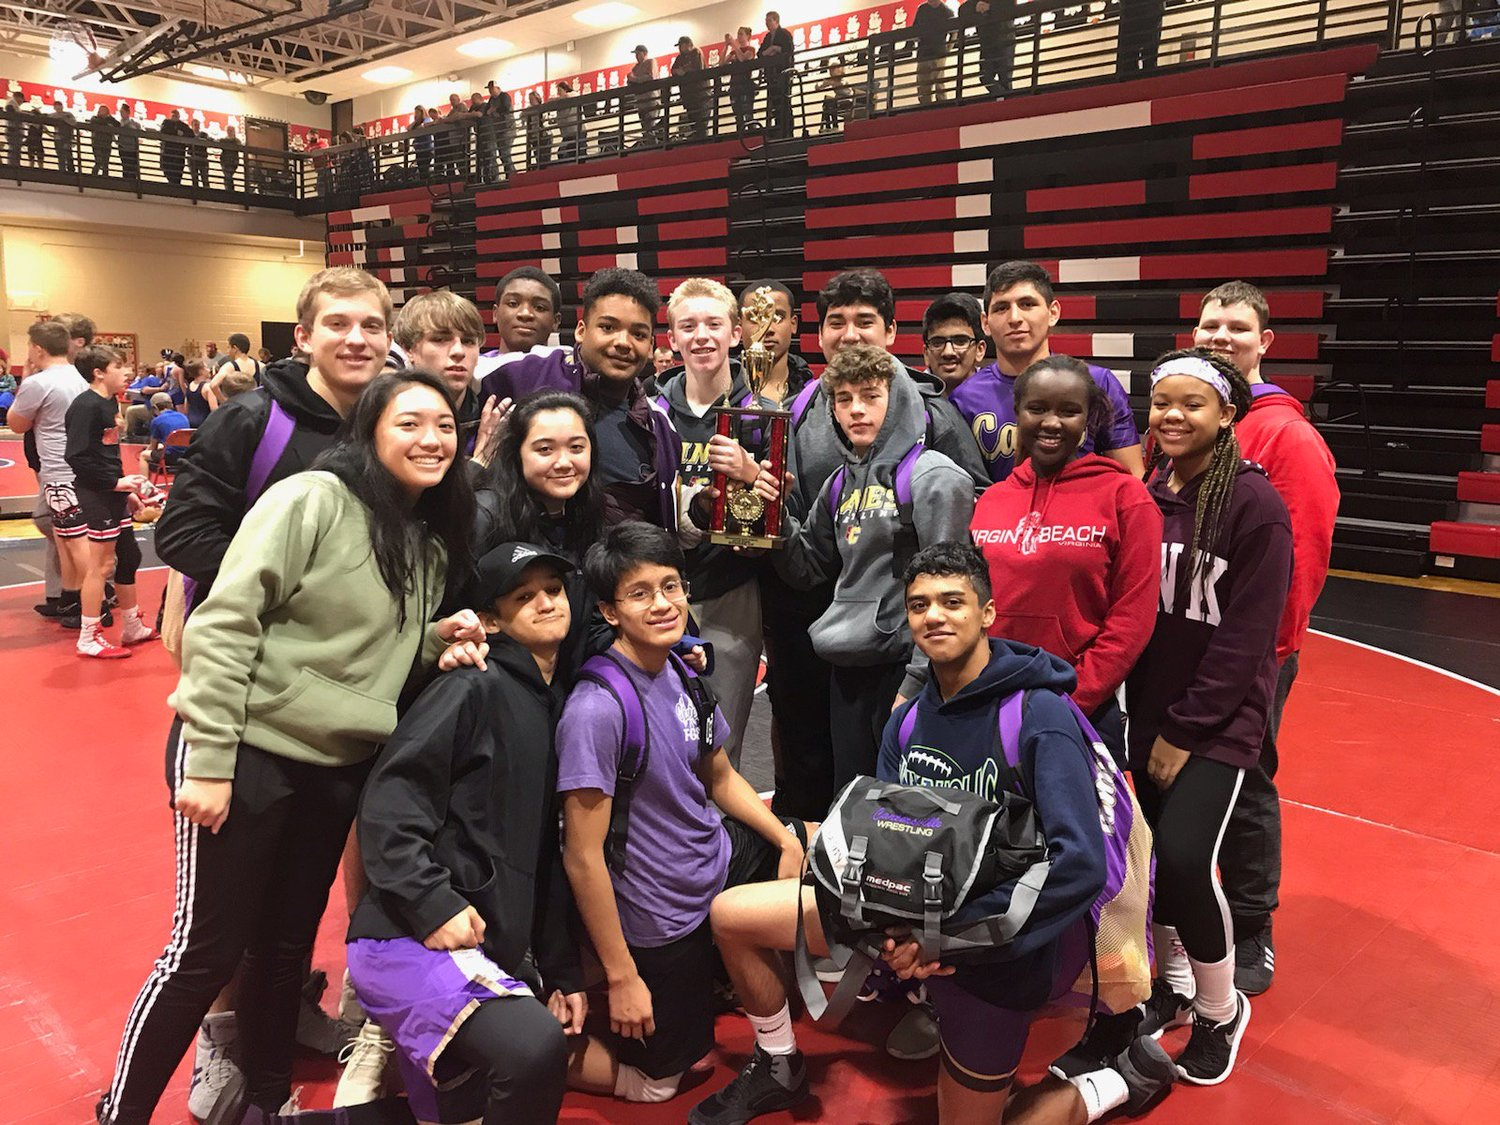 The Cartersville High wrestling team placed second in the Bulldog Brawl Duals Saturday at Cedartown.